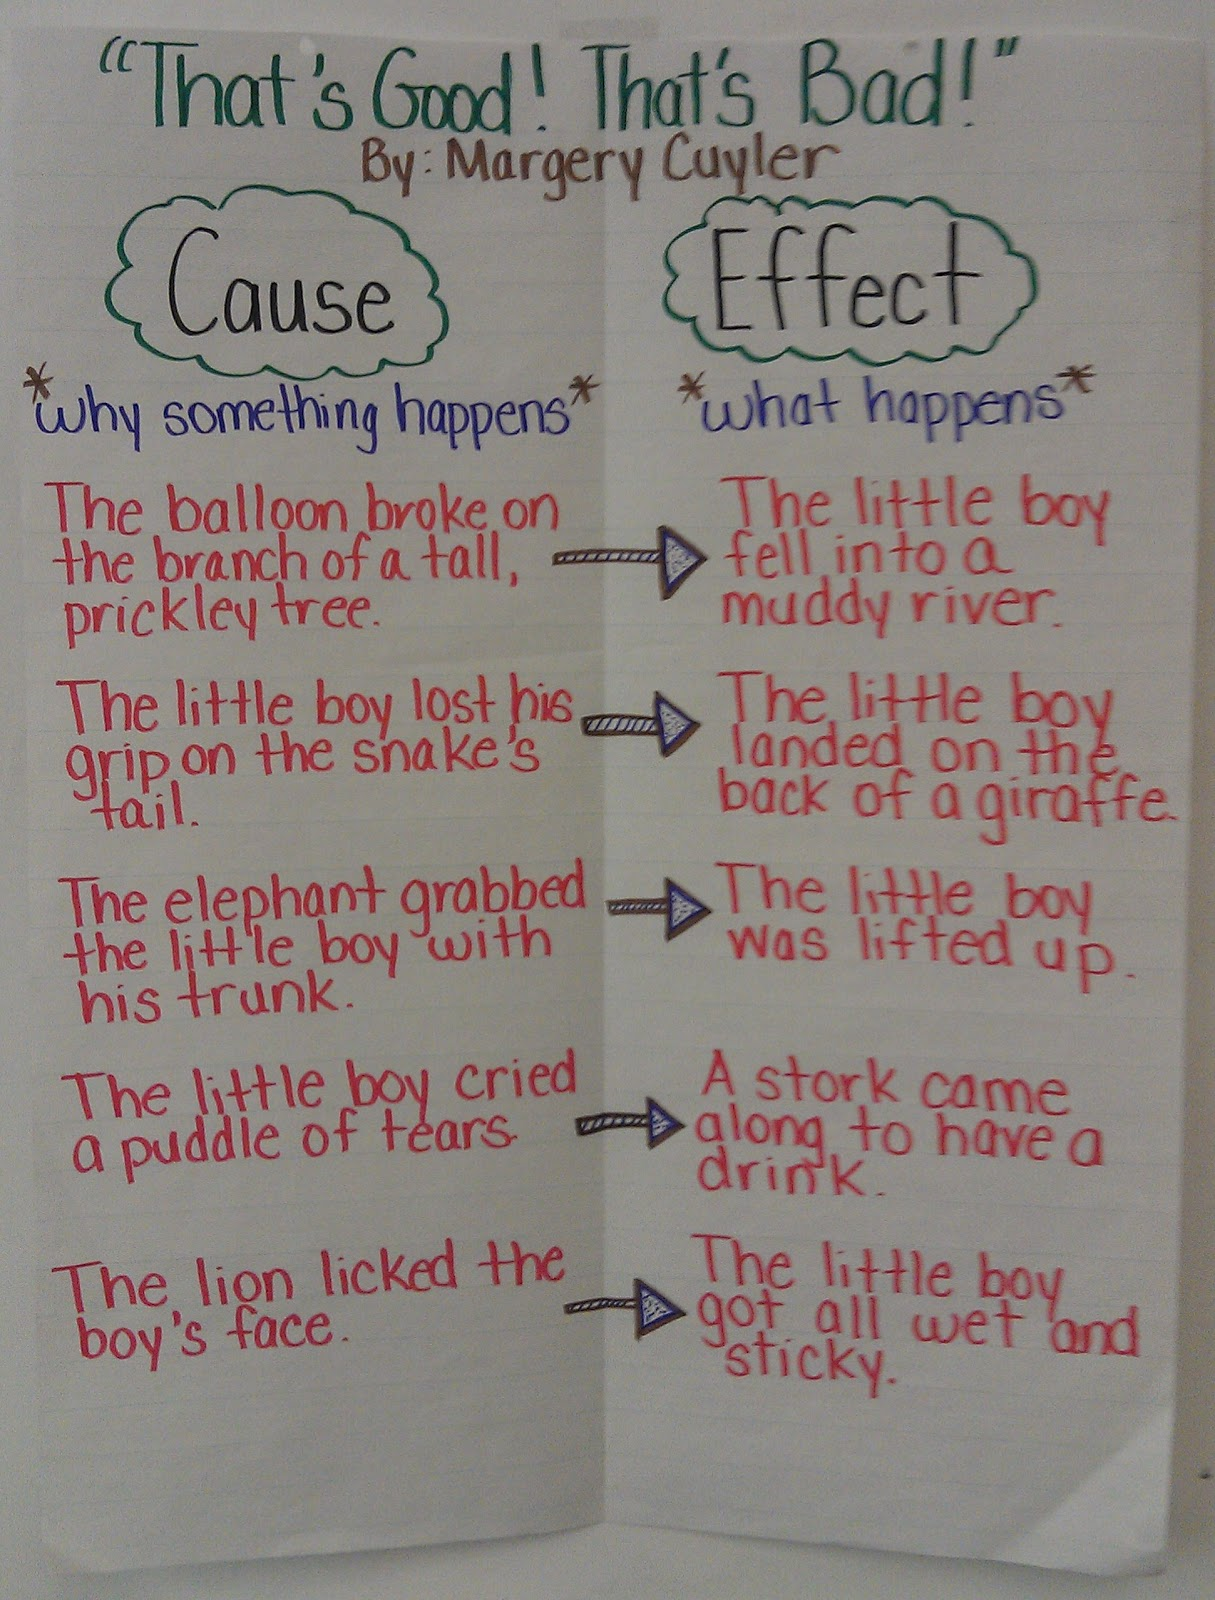 illustration of cause and effect relationship